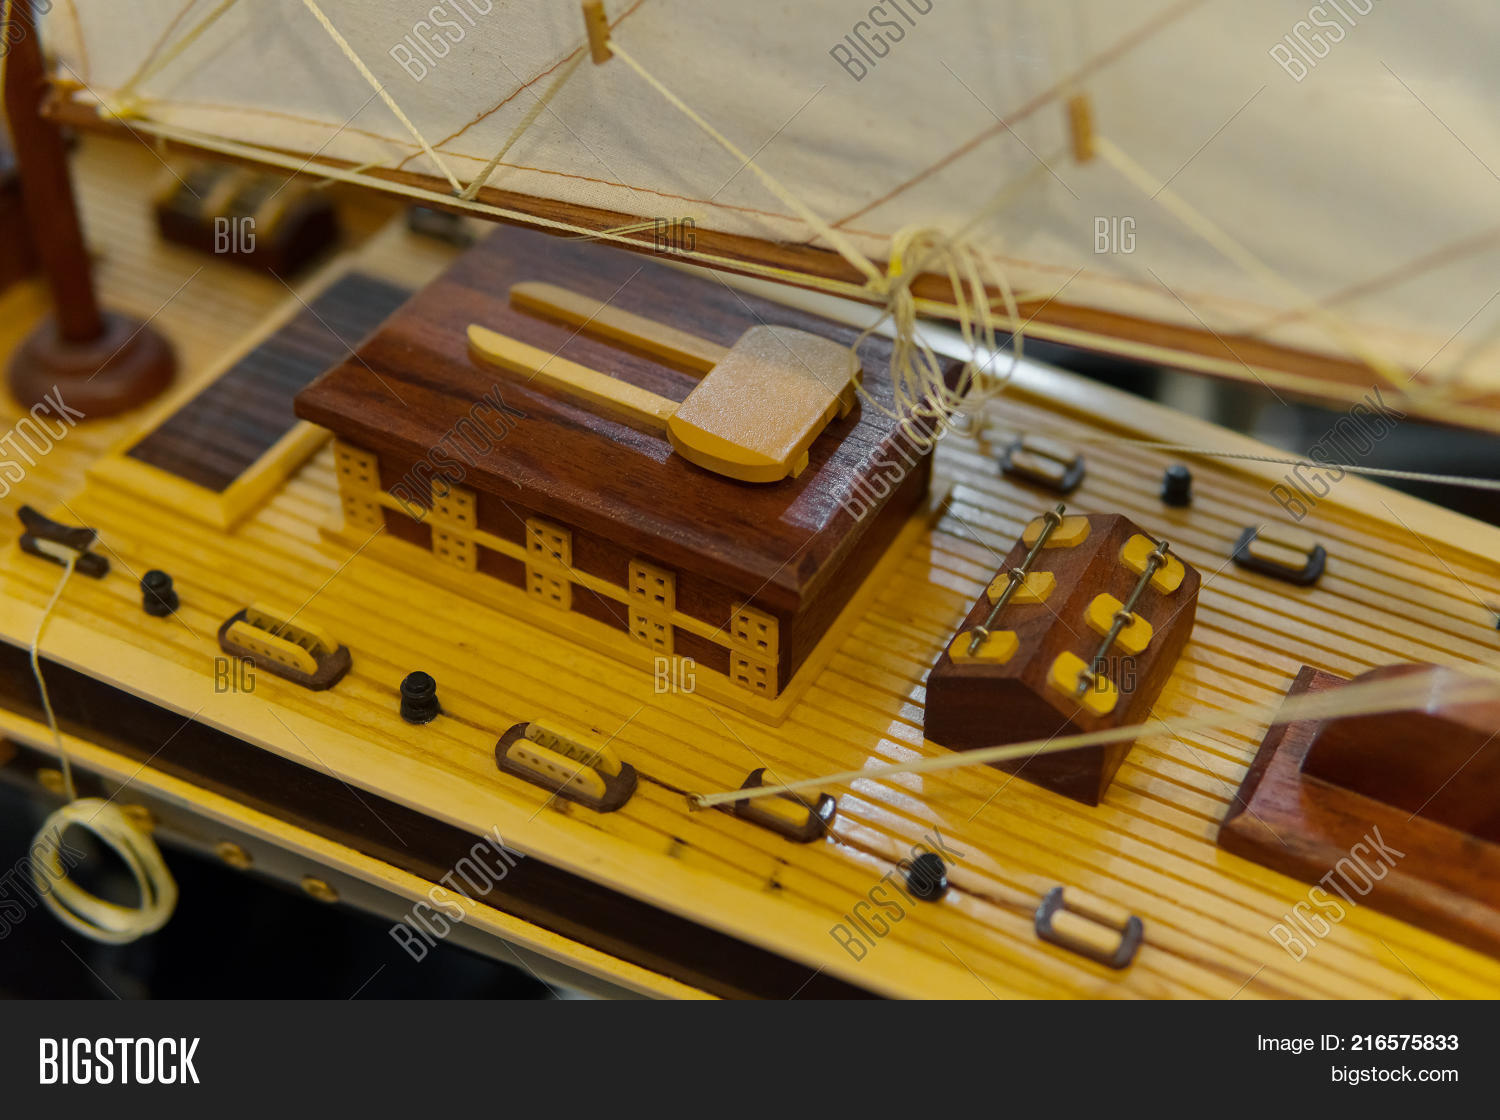 Sailing Ship Model Image & Photo (Free Trial) | Bigstock